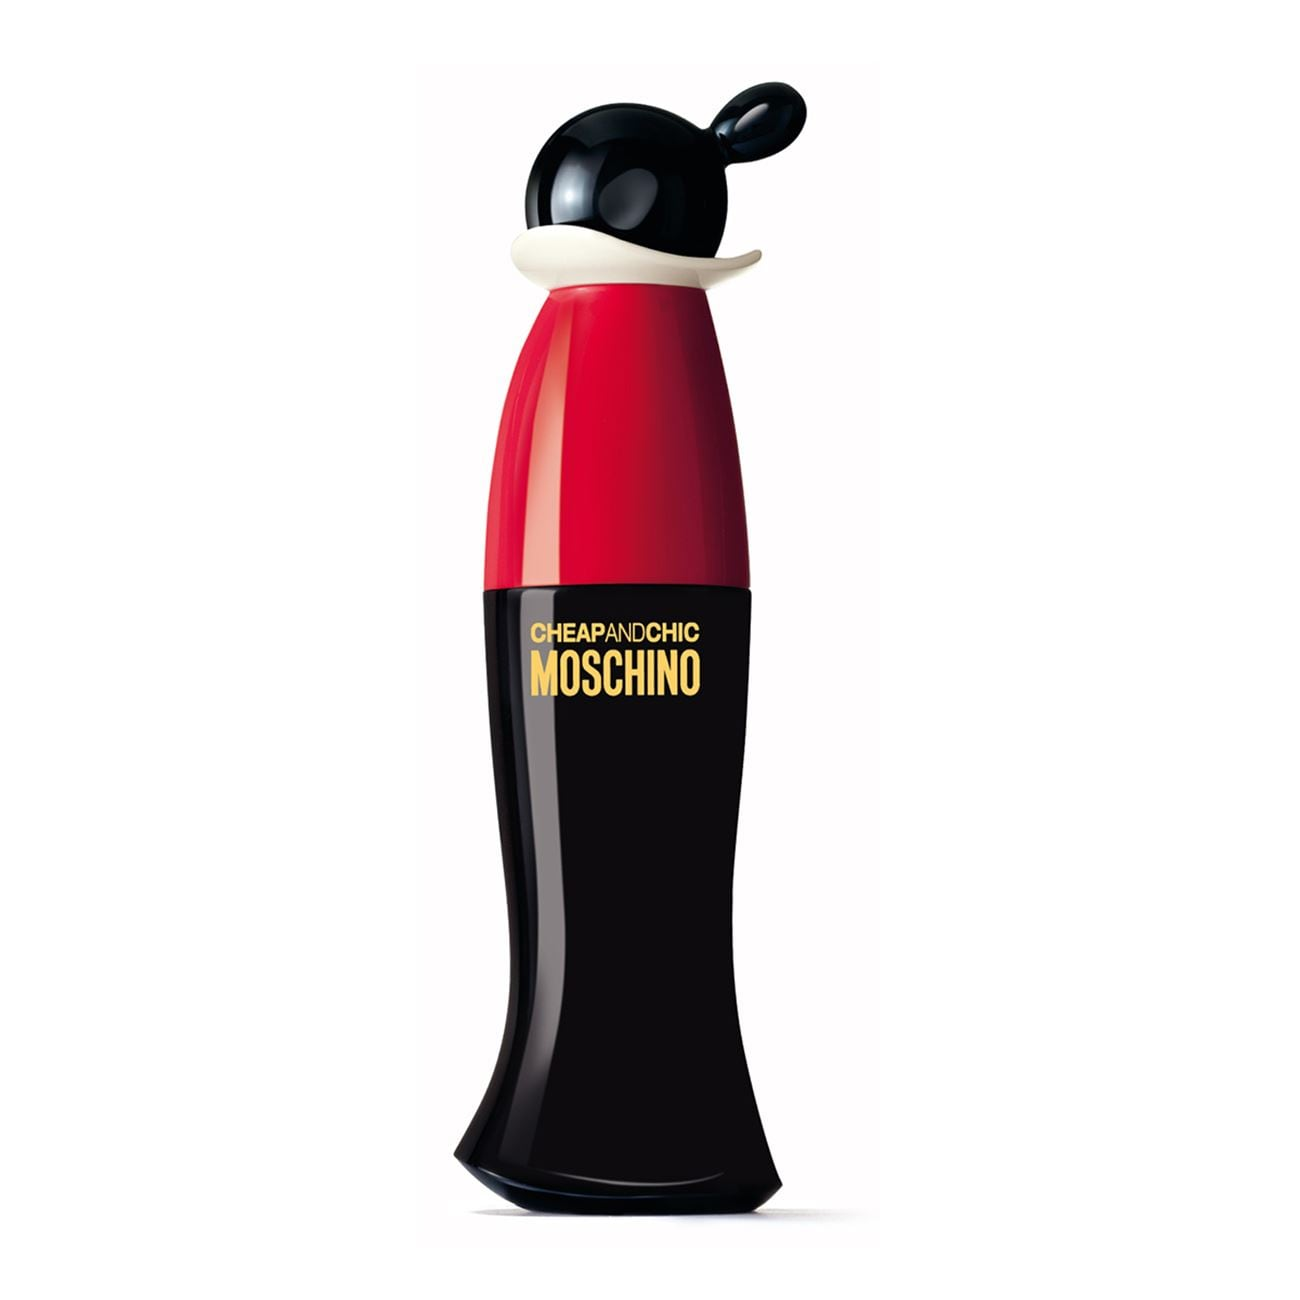 Moschino Cheap & Chic Deo Spray